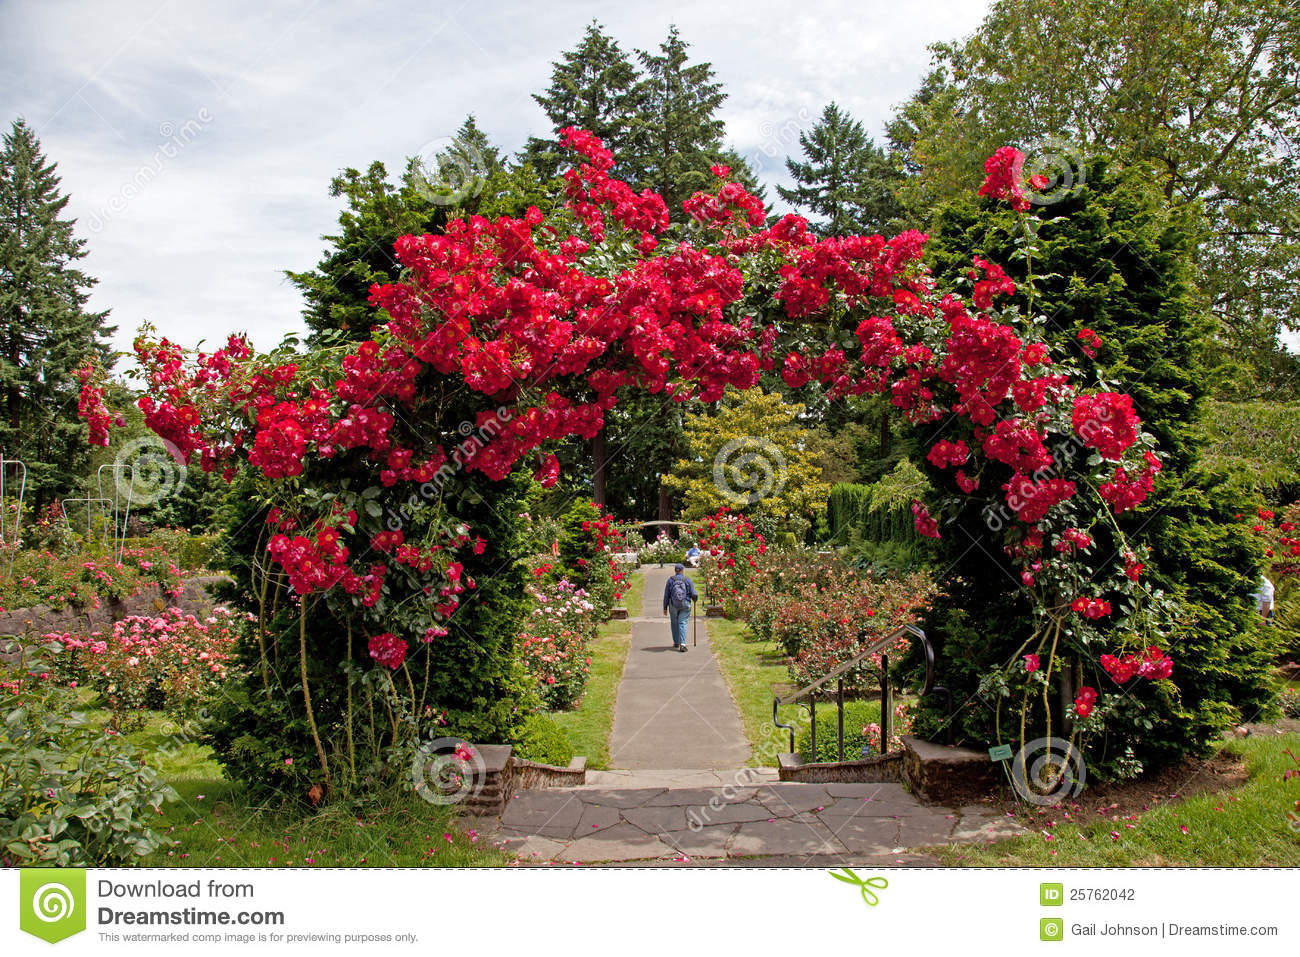 Roses In Garden: The Rose Test Garden Stock Photo. Image Of Oregon, Garden